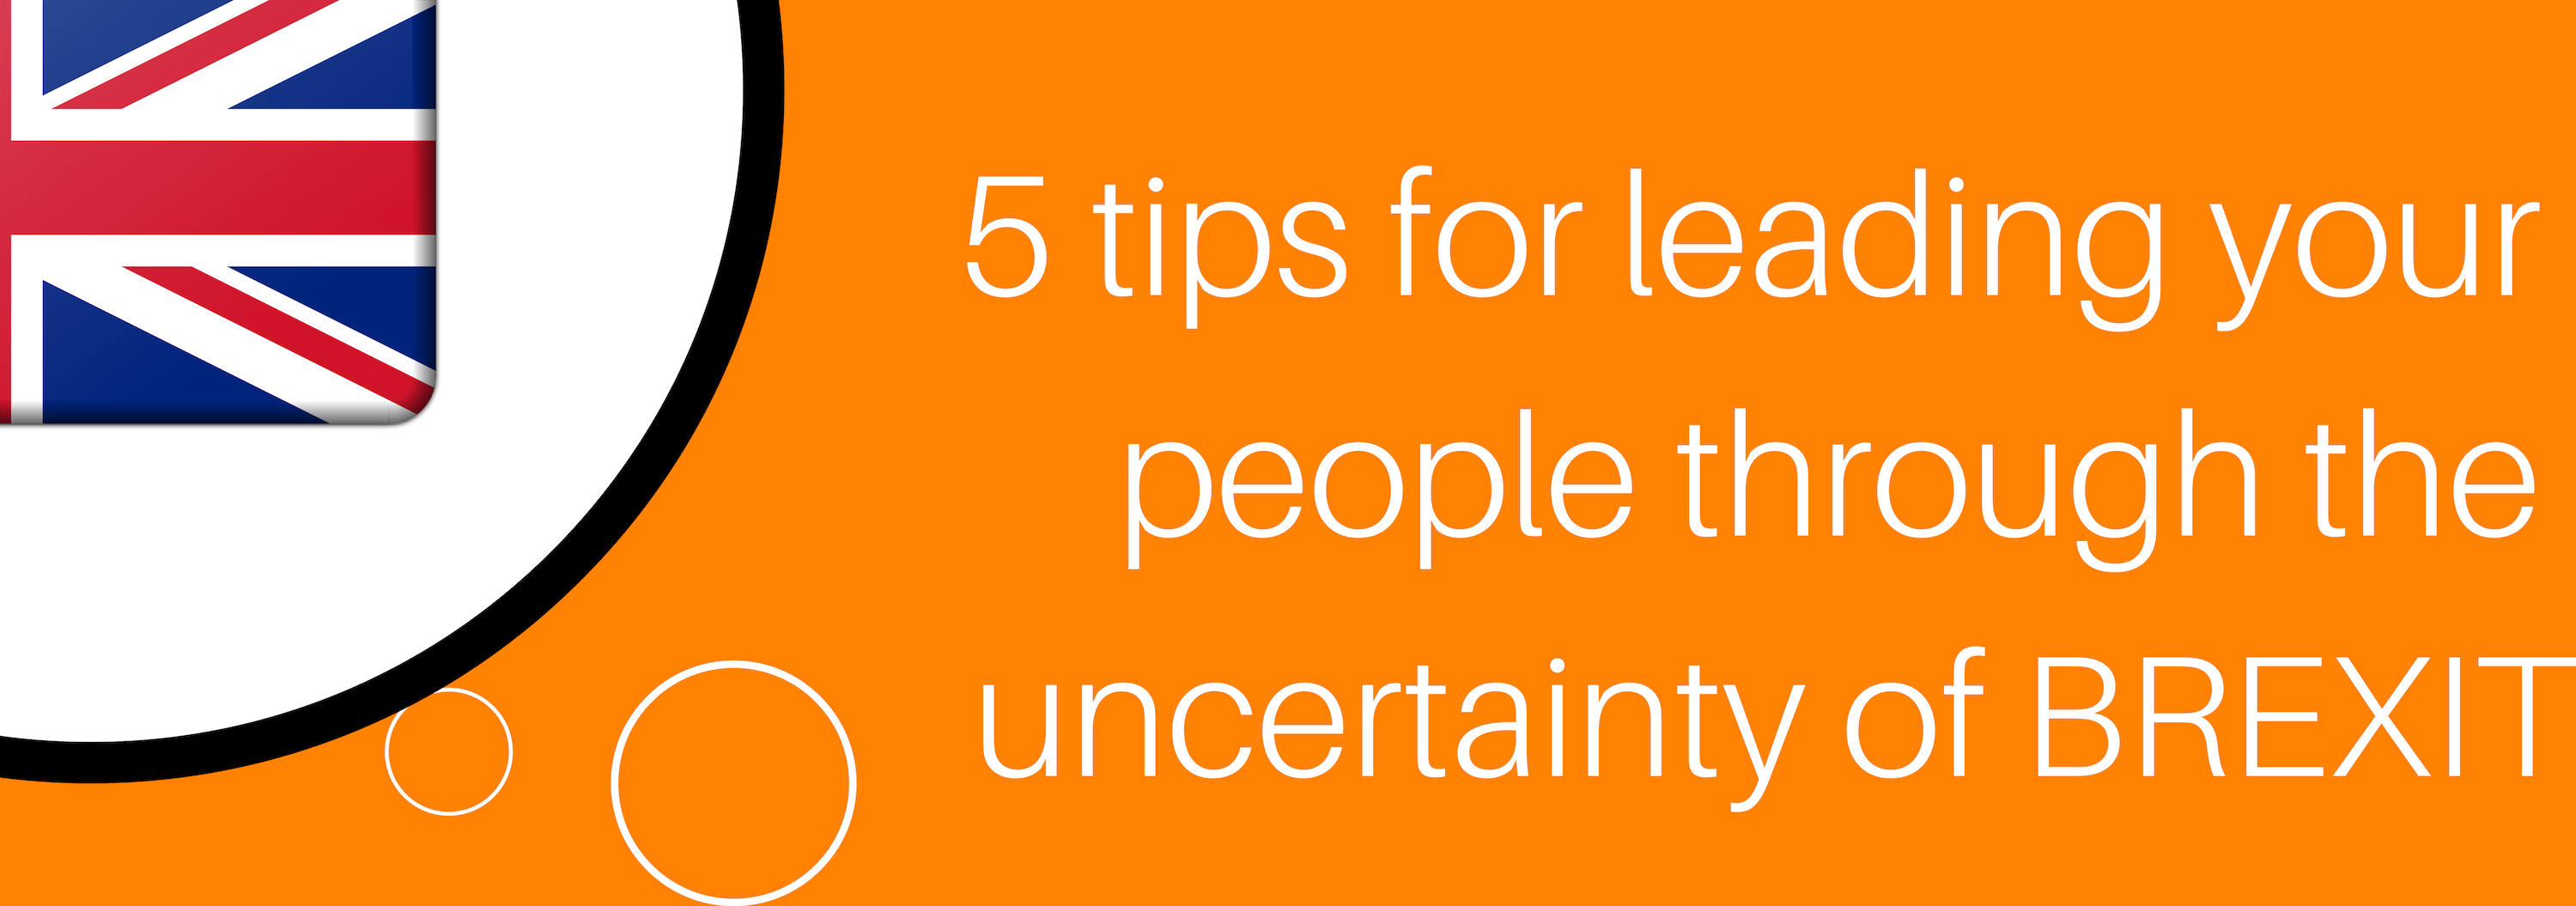 5 tips for leading your people through the uncertainty of BREXIT